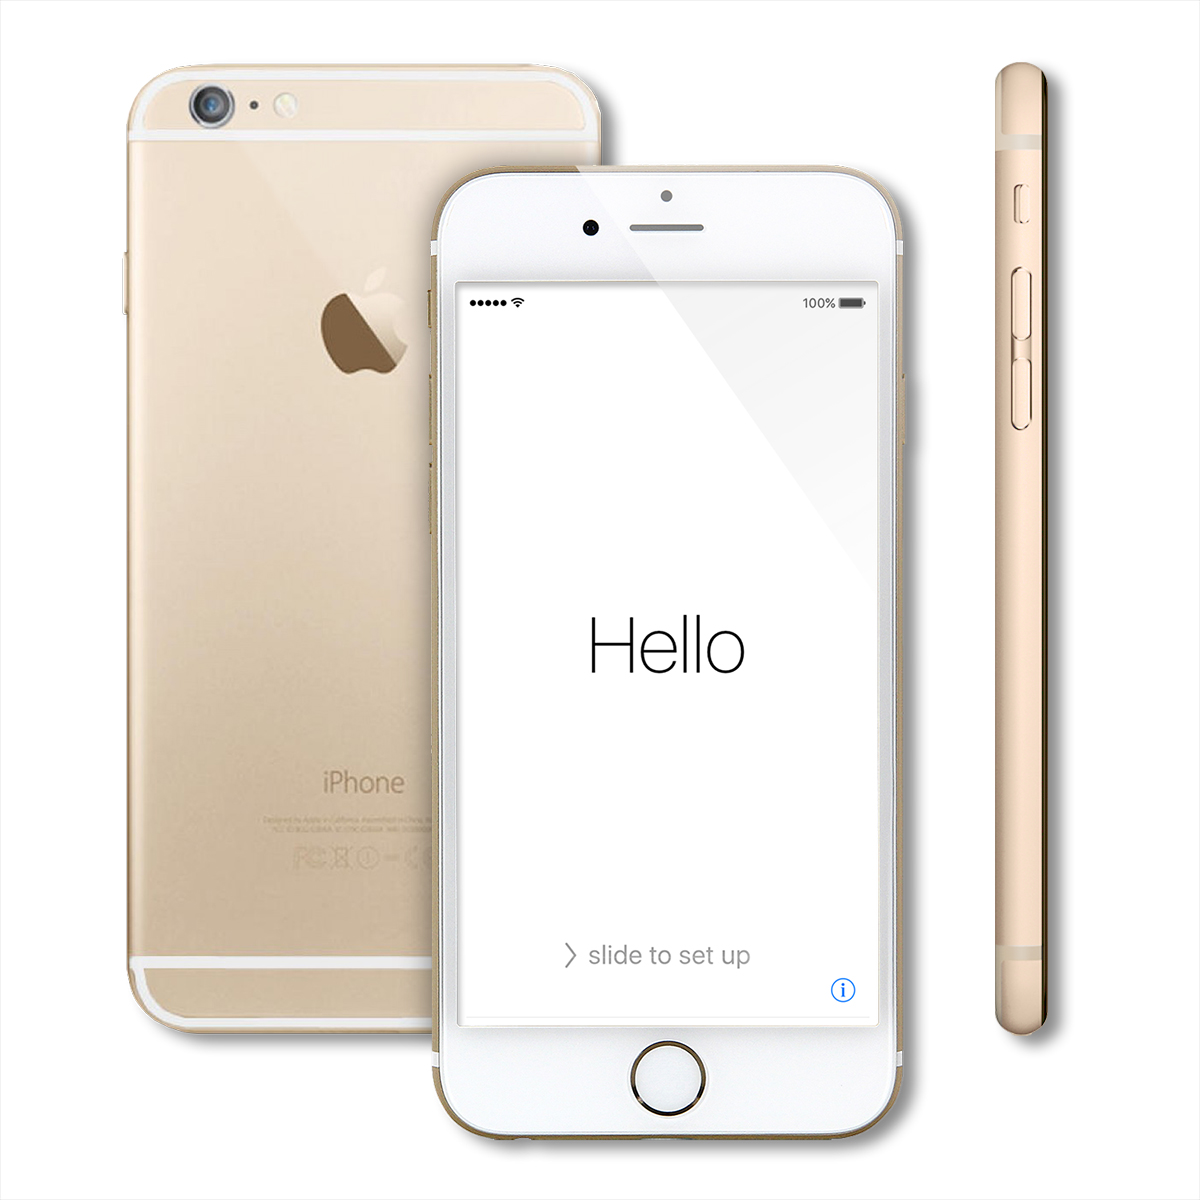 apple iphone 6 16gb smartphone gsm unlocked t mobile at t ebay. Black Bedroom Furniture Sets. Home Design Ideas